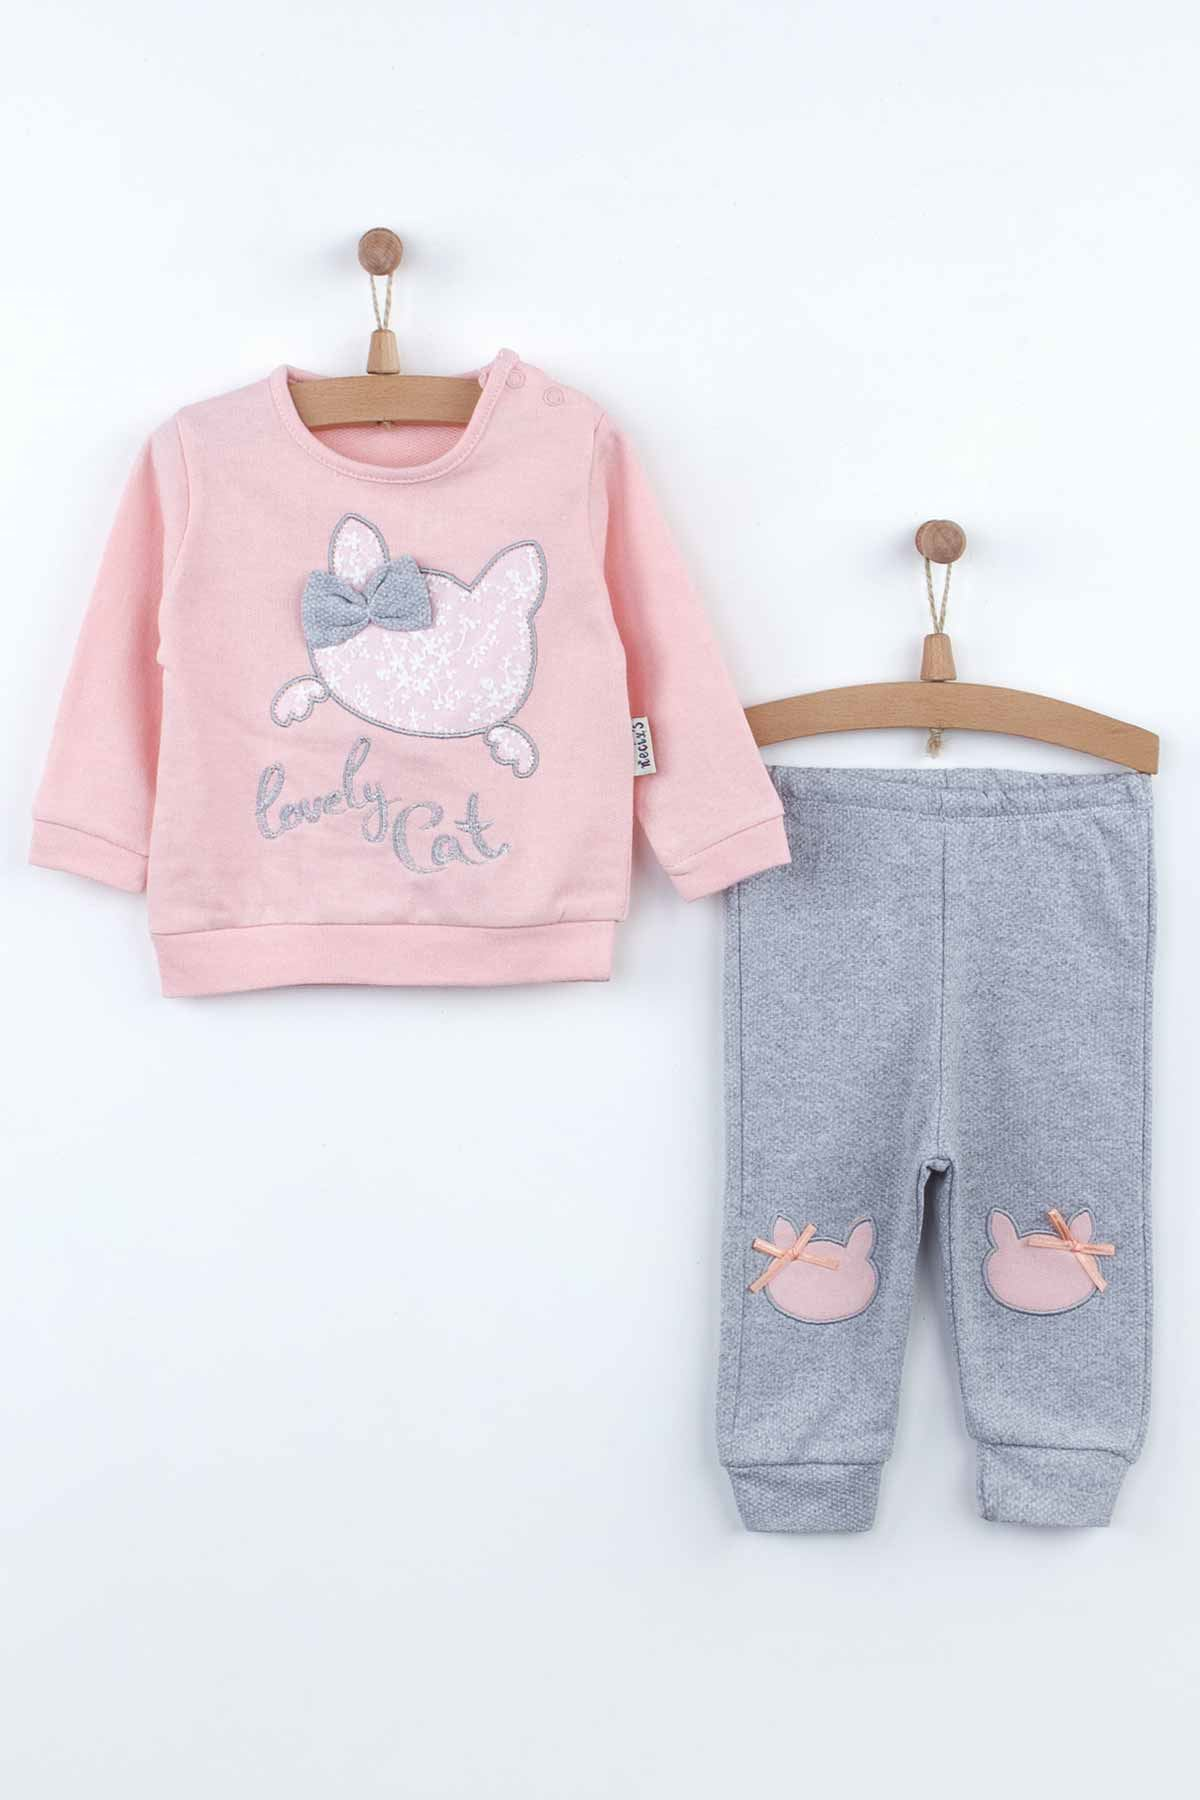 Powder Baby Girl Tracksuit Sweatshirts Suit 2 Piece Set Cute Babies Pajamas Cotton Casual Wear Outfit Girls Babies Model